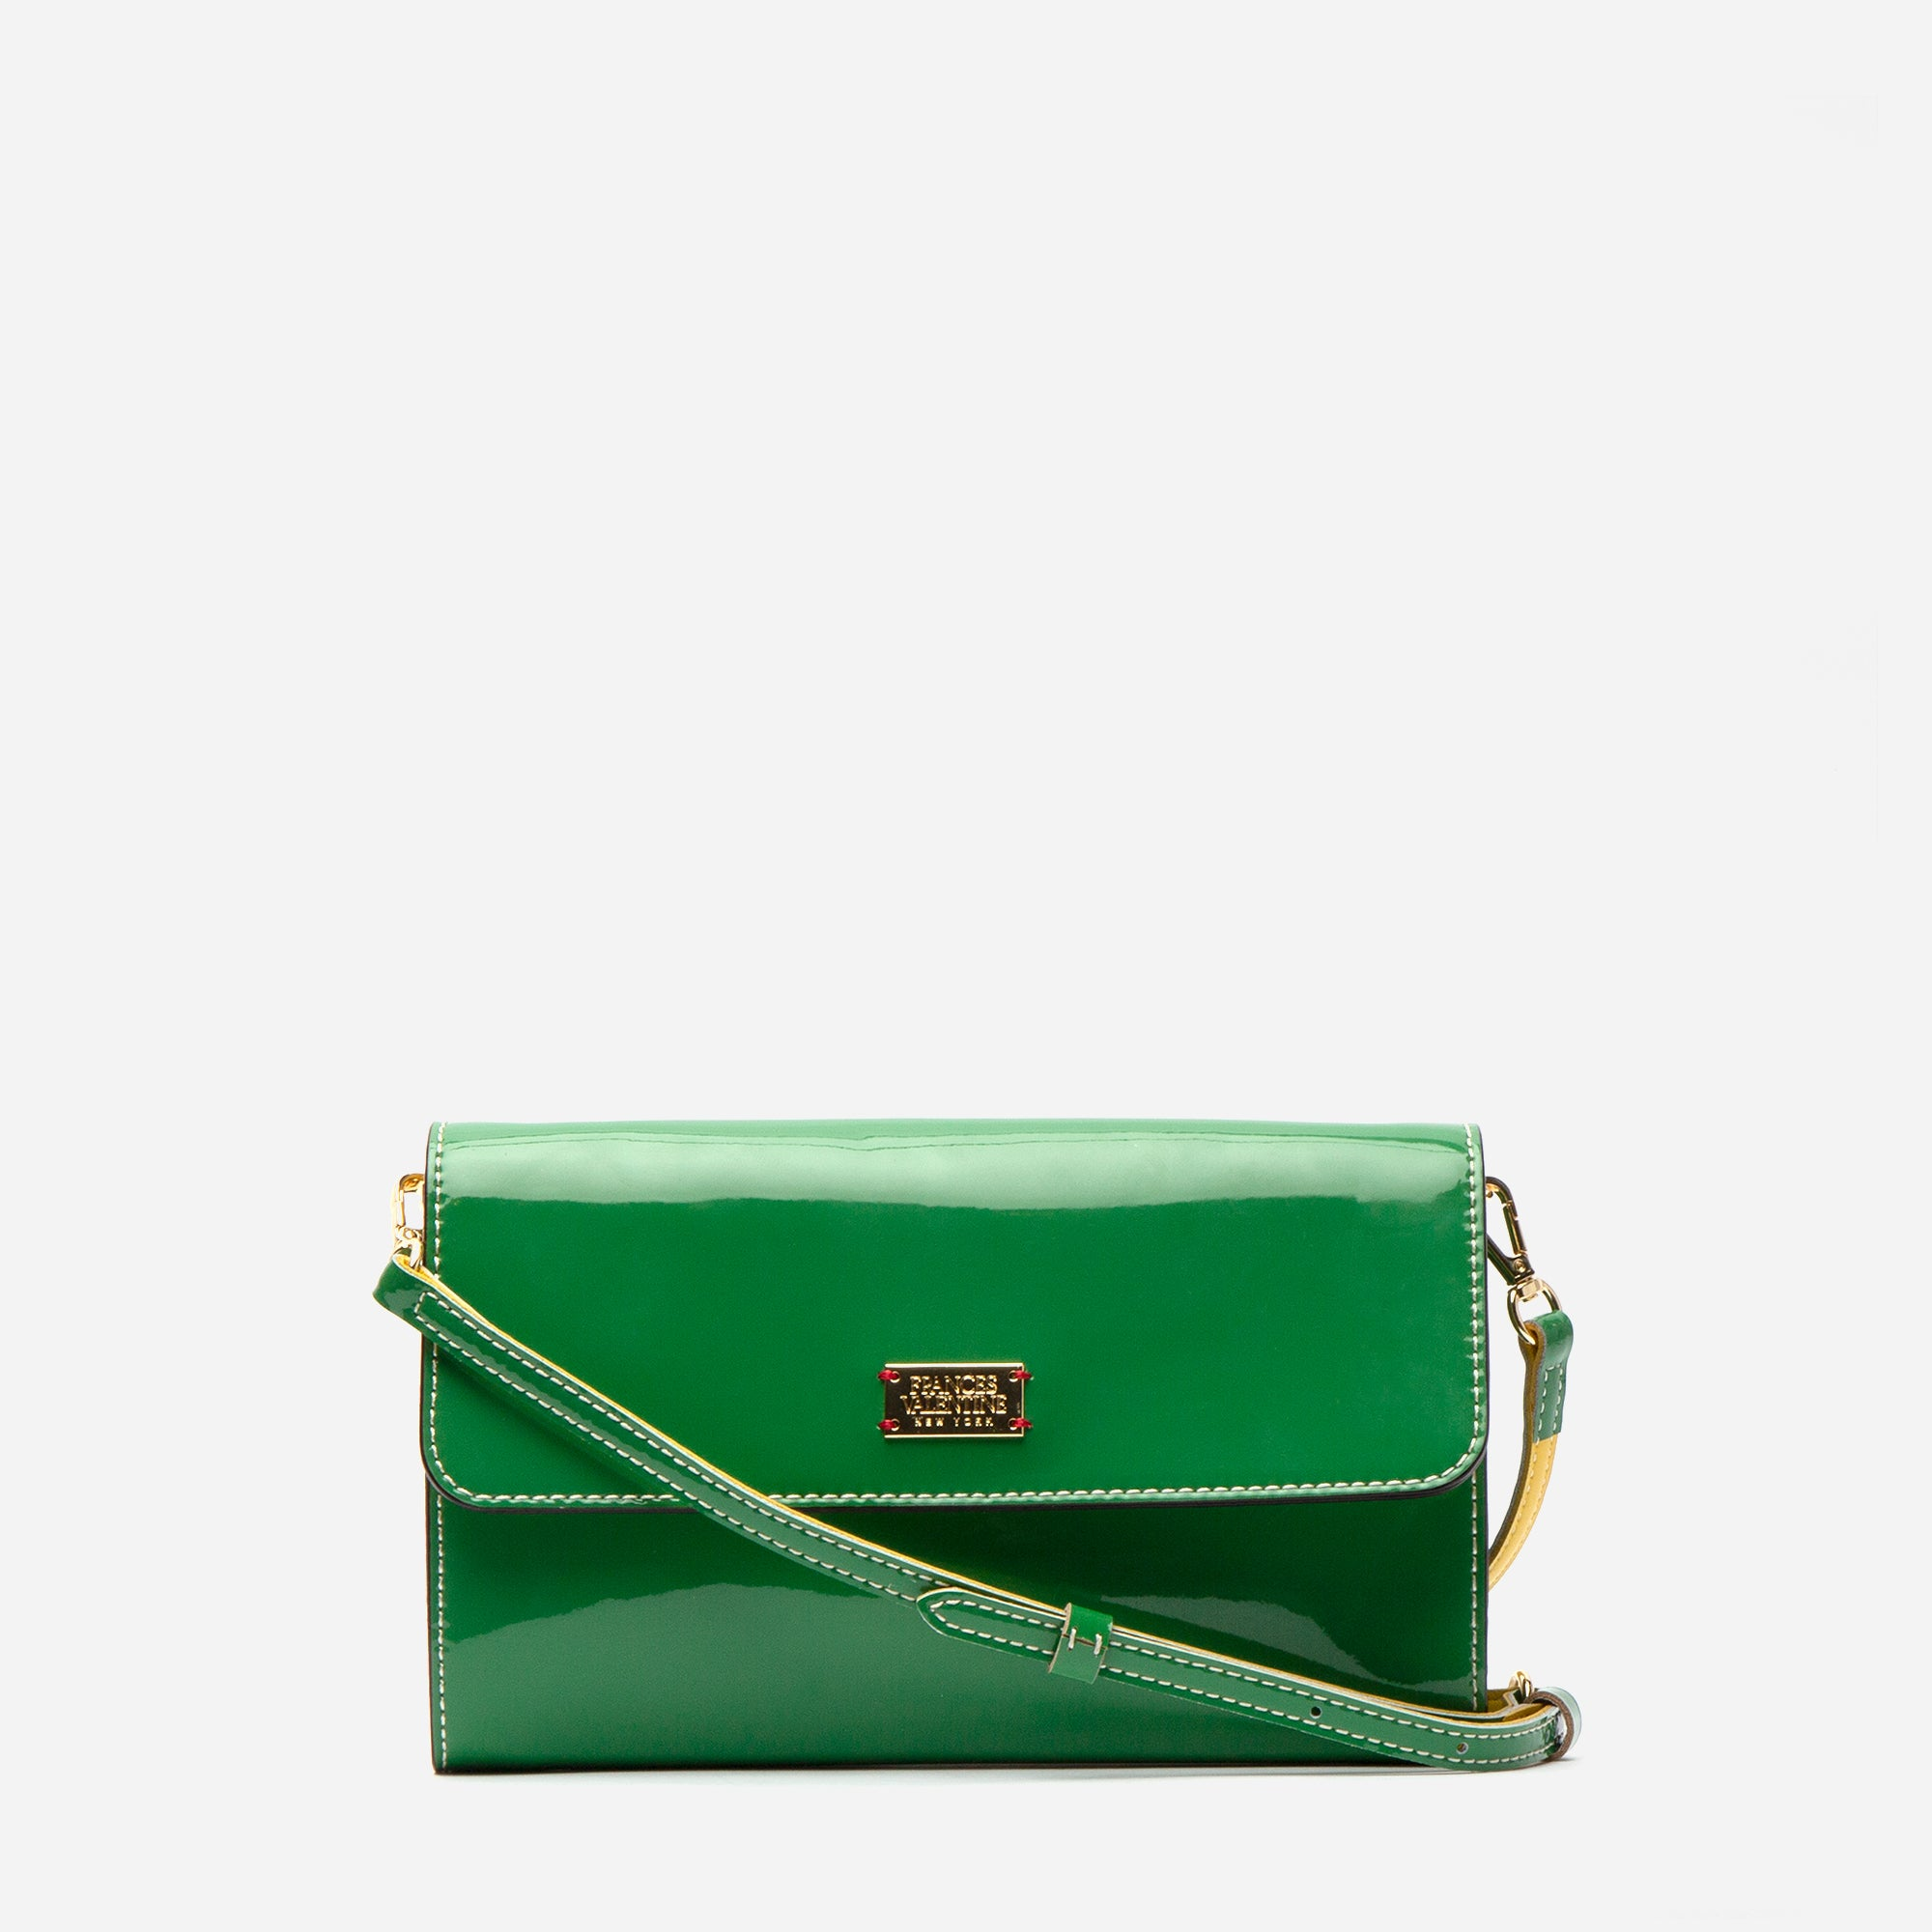 Kelly Crossbody Clutch Soft Patent Green Yellow - Frances Valentine